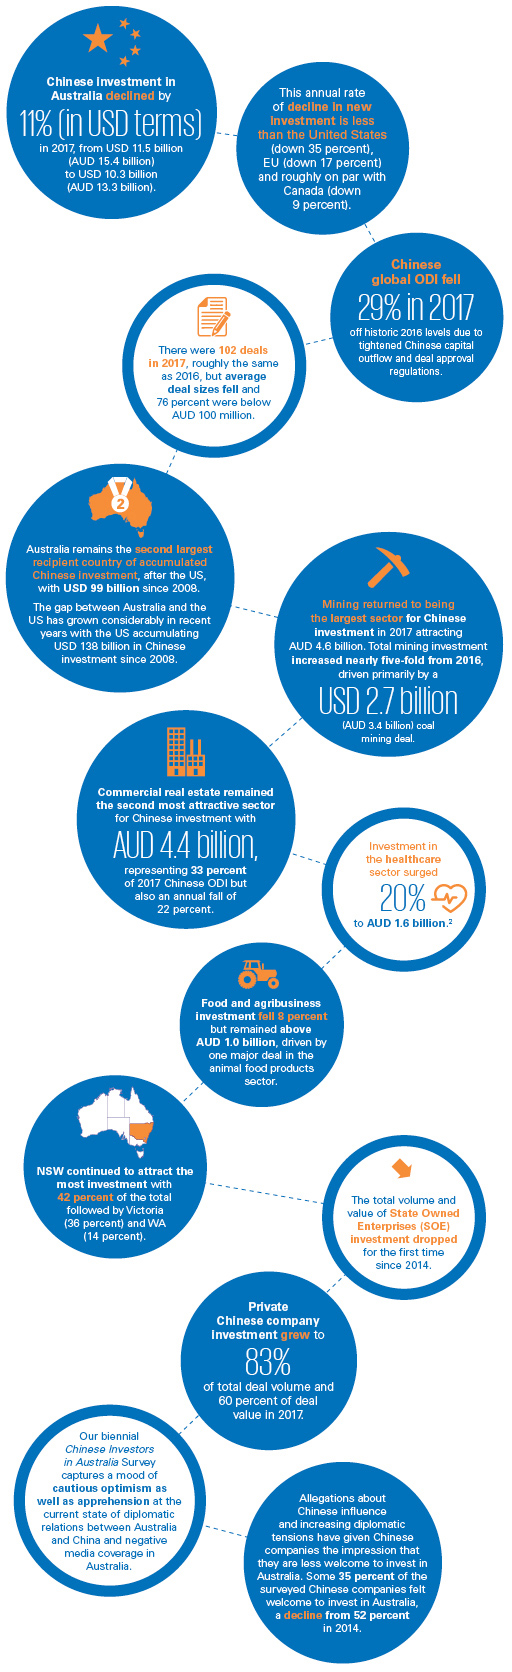 Demystifying Chinese Investment in Australia: June 2018 visual summary